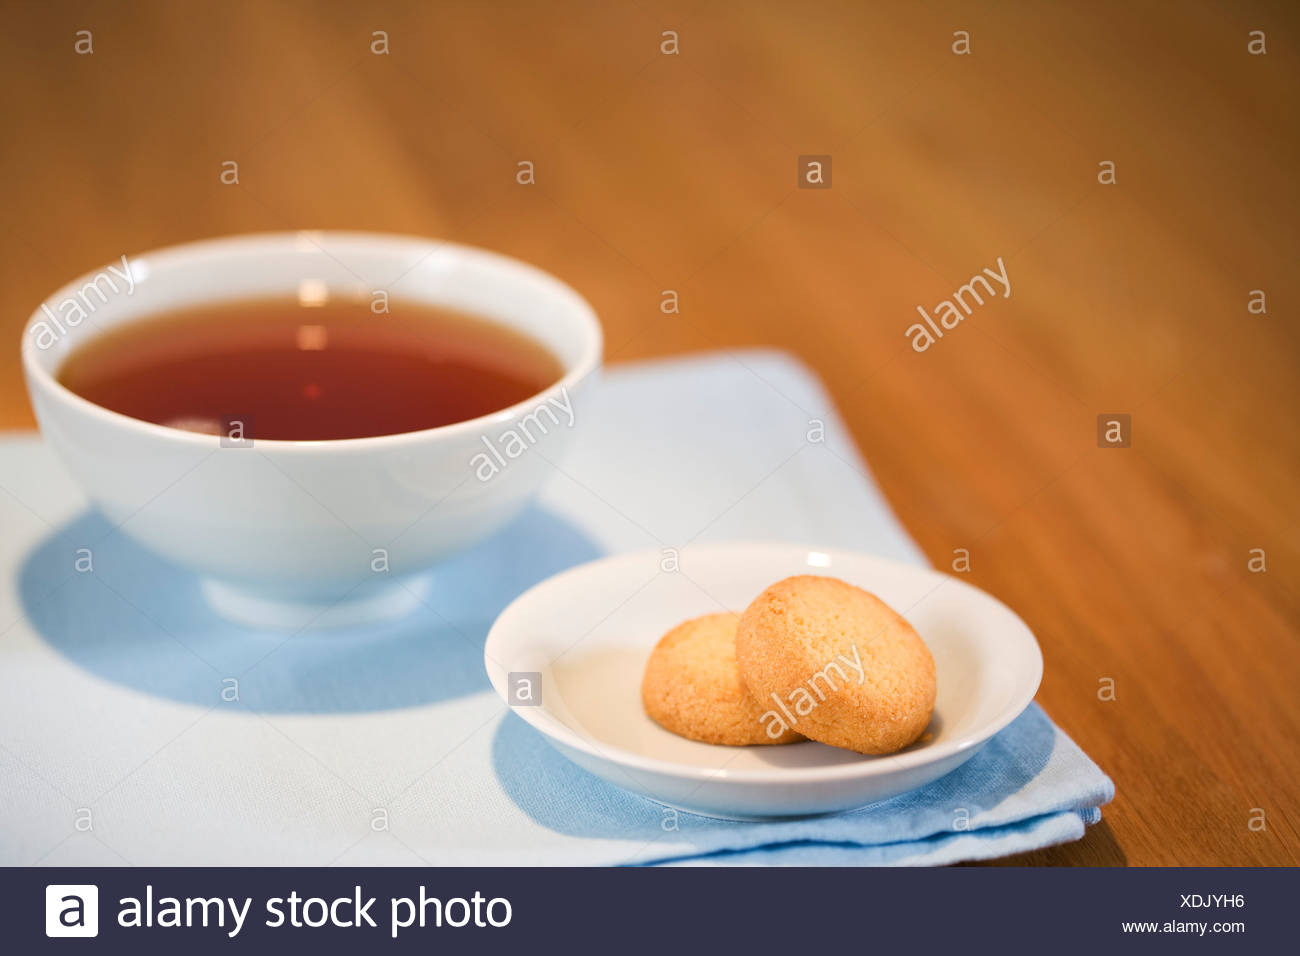 A cup of tea and some cakes - Stock Image